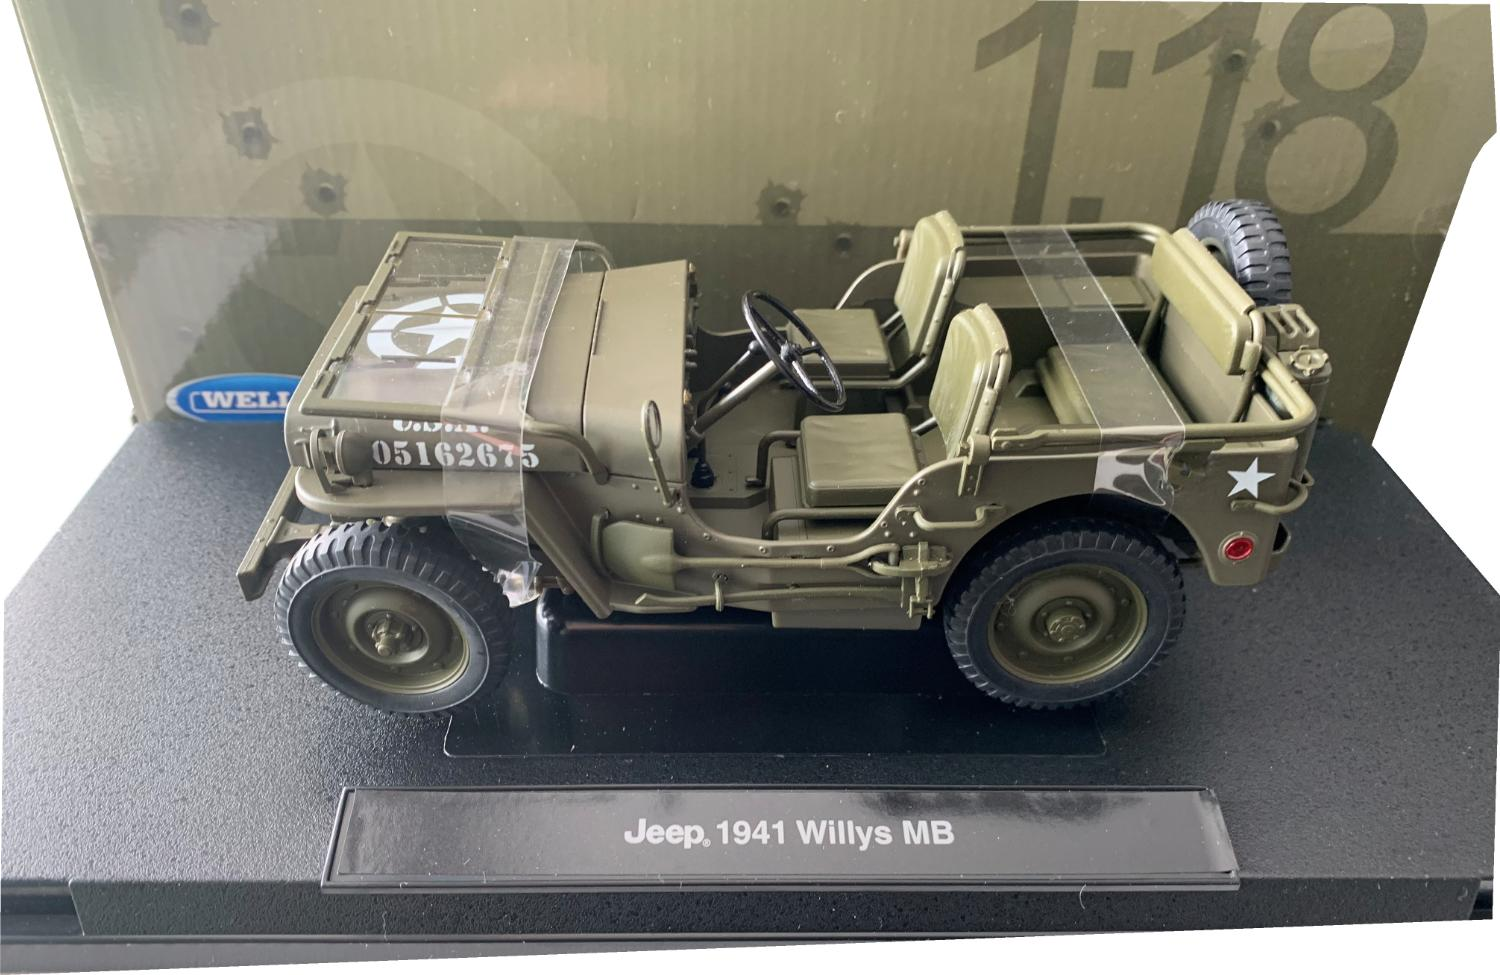 Willys MB USA Military Jeep Open 1941 in green 1:18 scale model from Welly